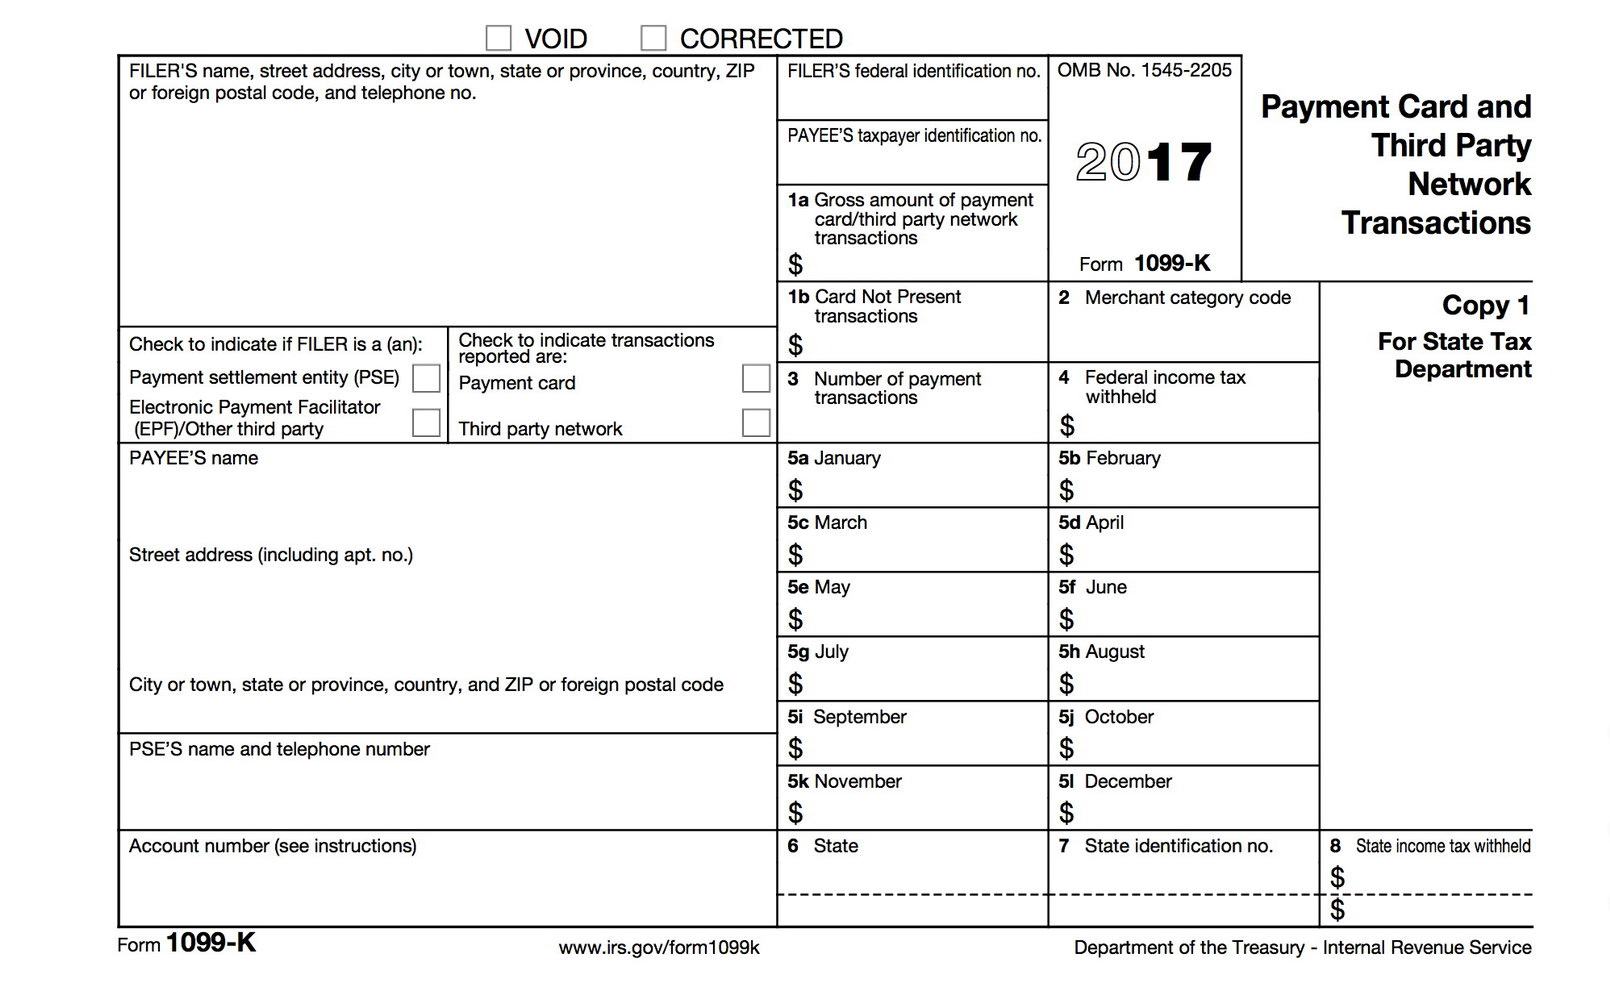 Form 1099 Misc With Nec In Box 7